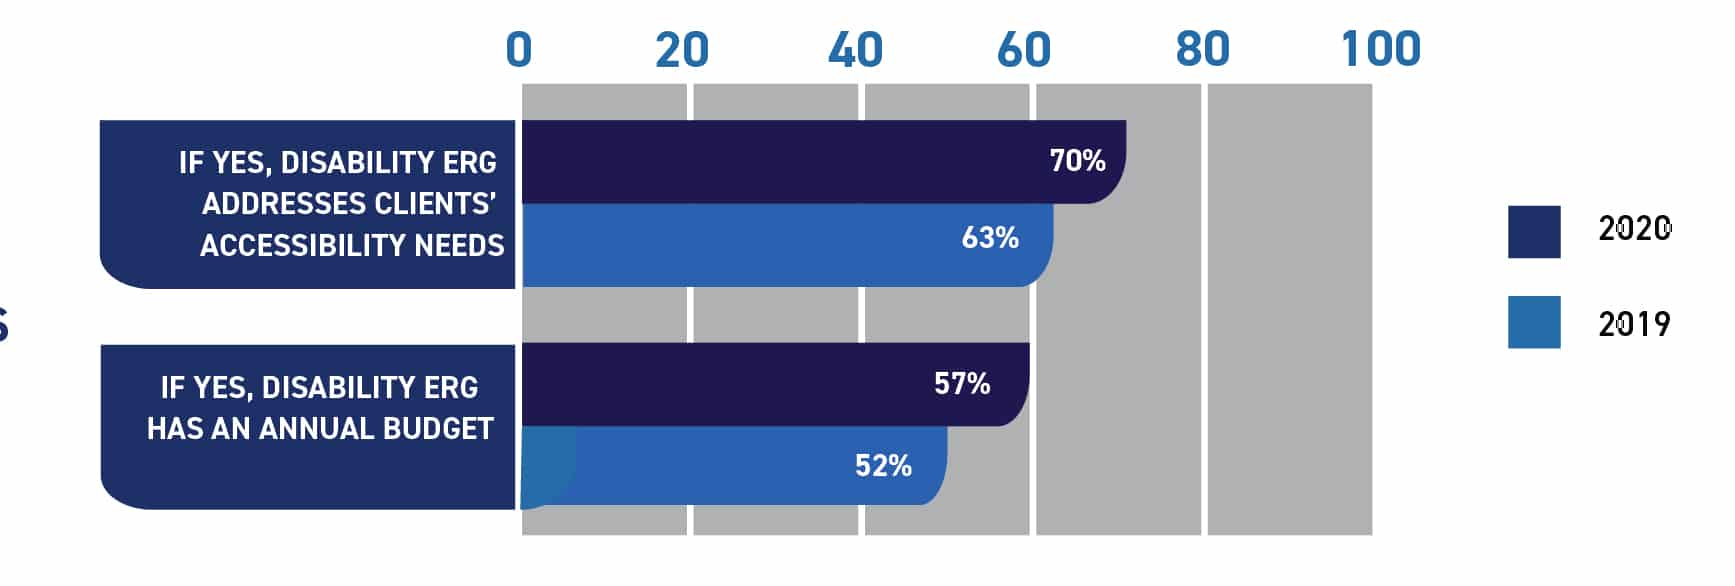 Graph showing percentage of companies with disability ERGs, also: Use ERGs to address client needs 70 in 2020, 63 in 2019. Disability ERGs w/ annual budget, 57 in 2020, 77% used, 48% hired; Colleges + Universities: 54% used, 57% hired; Existing Channels: 47% used, 68% hired.